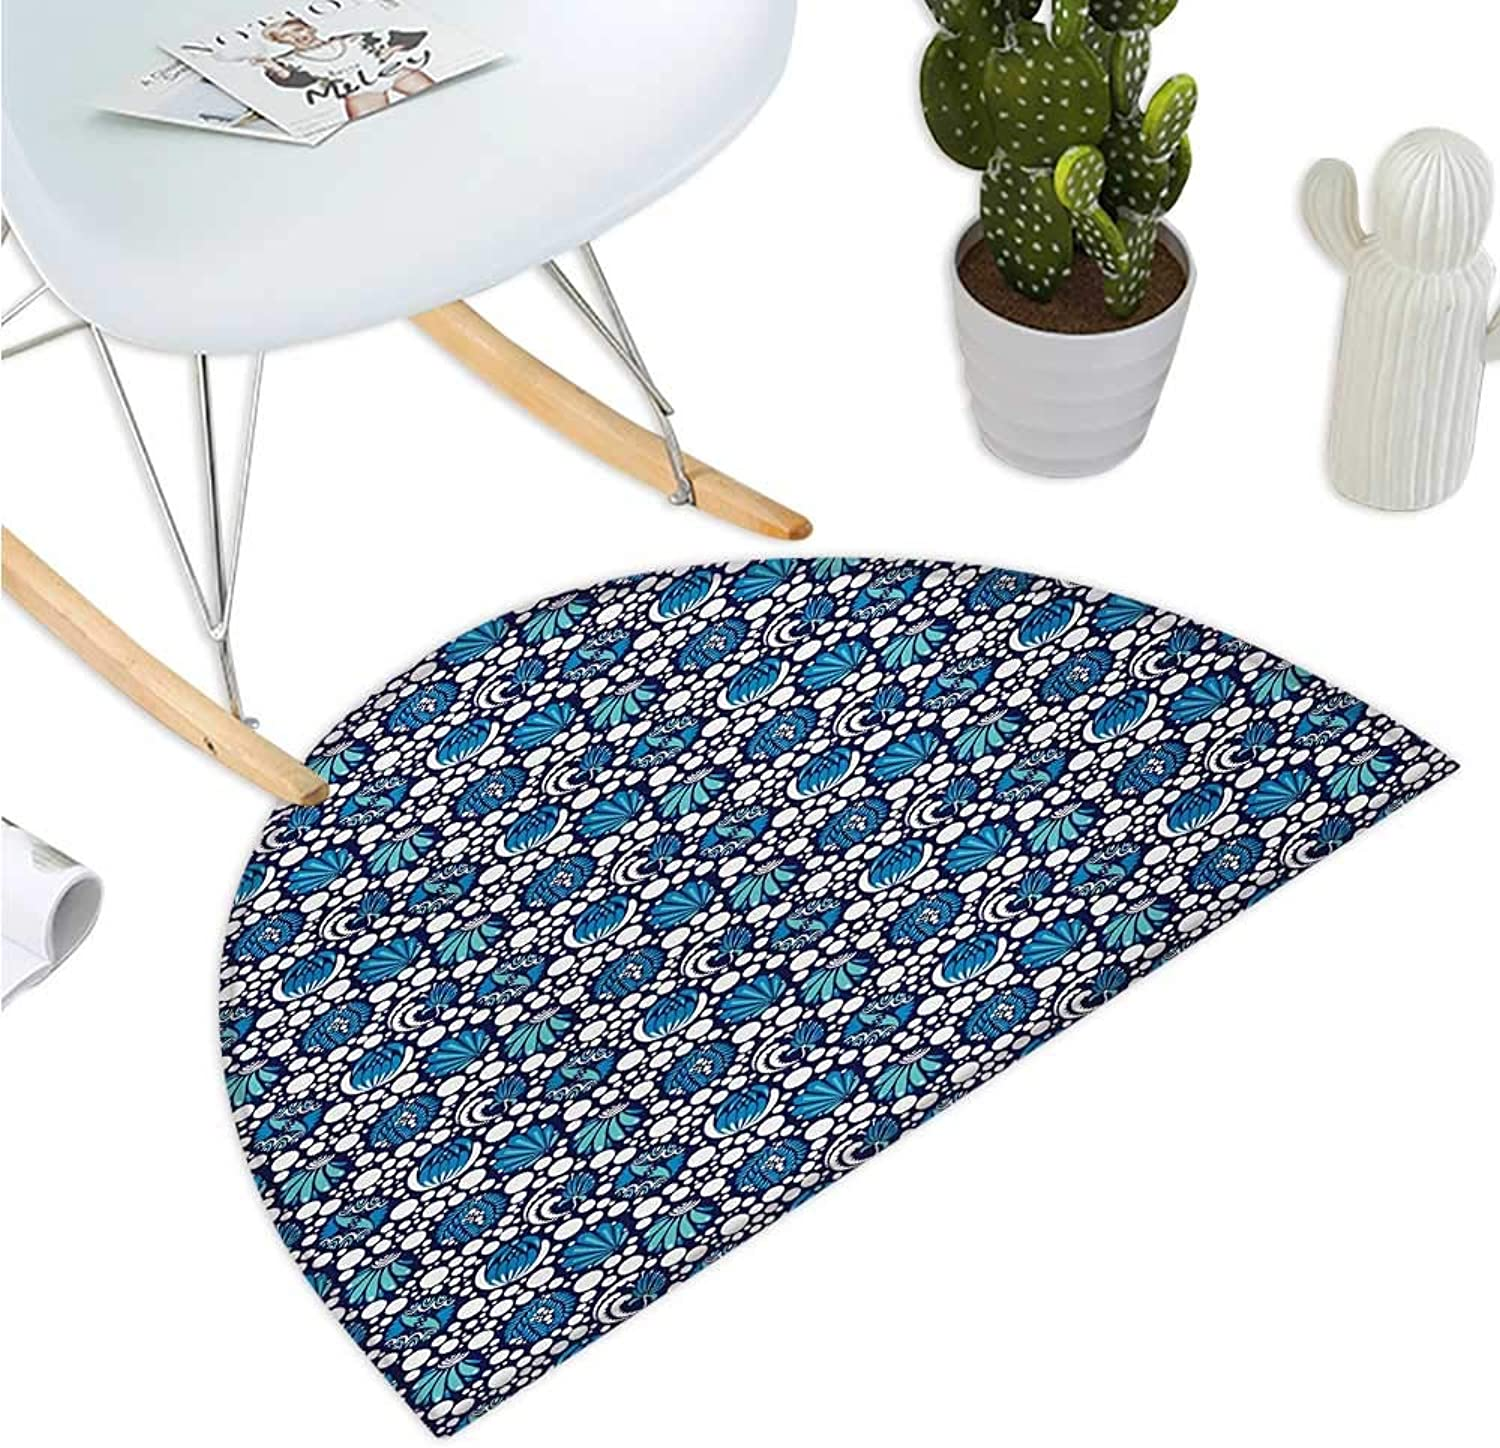 bluee and White Semicircle Doormat Sea Inspired Abstract Composition with Floral Elements and Dots Halfmoon doormats H 43.3  xD 64.9  bluee Turquoise White